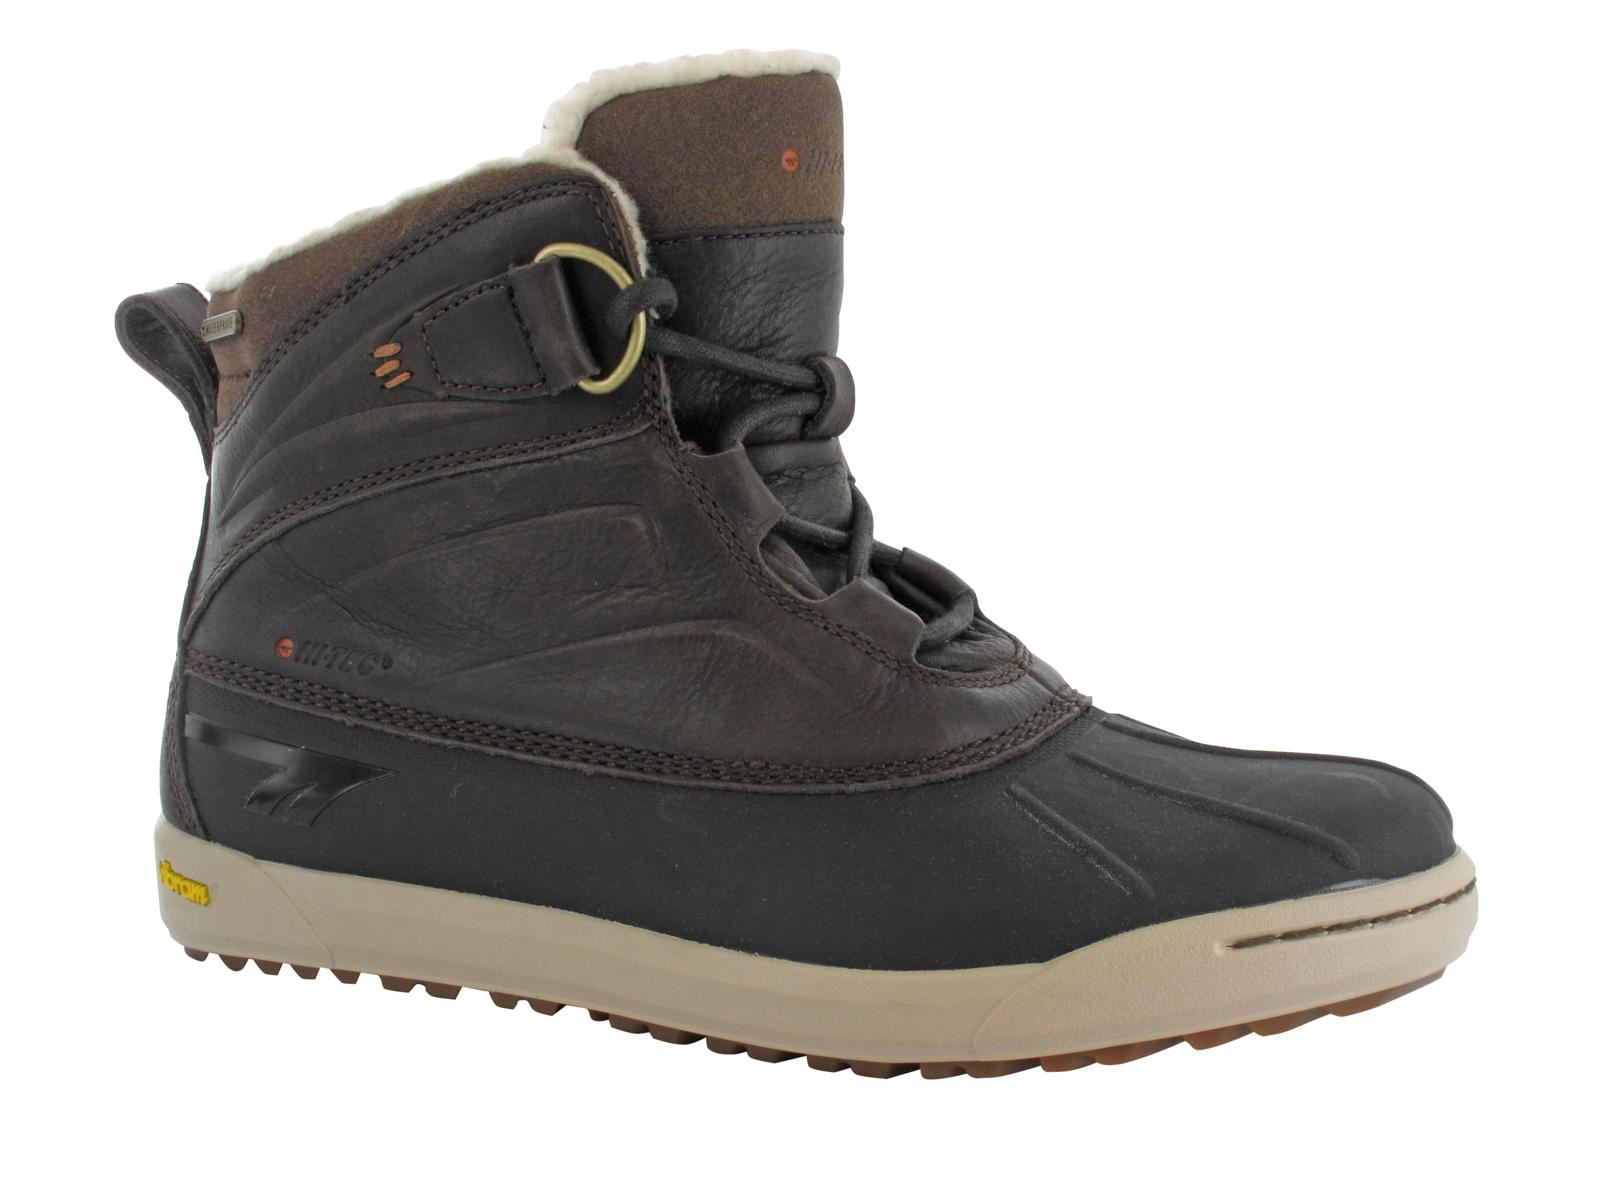 Waterproof Mens Boots For Snow - Boot Hto